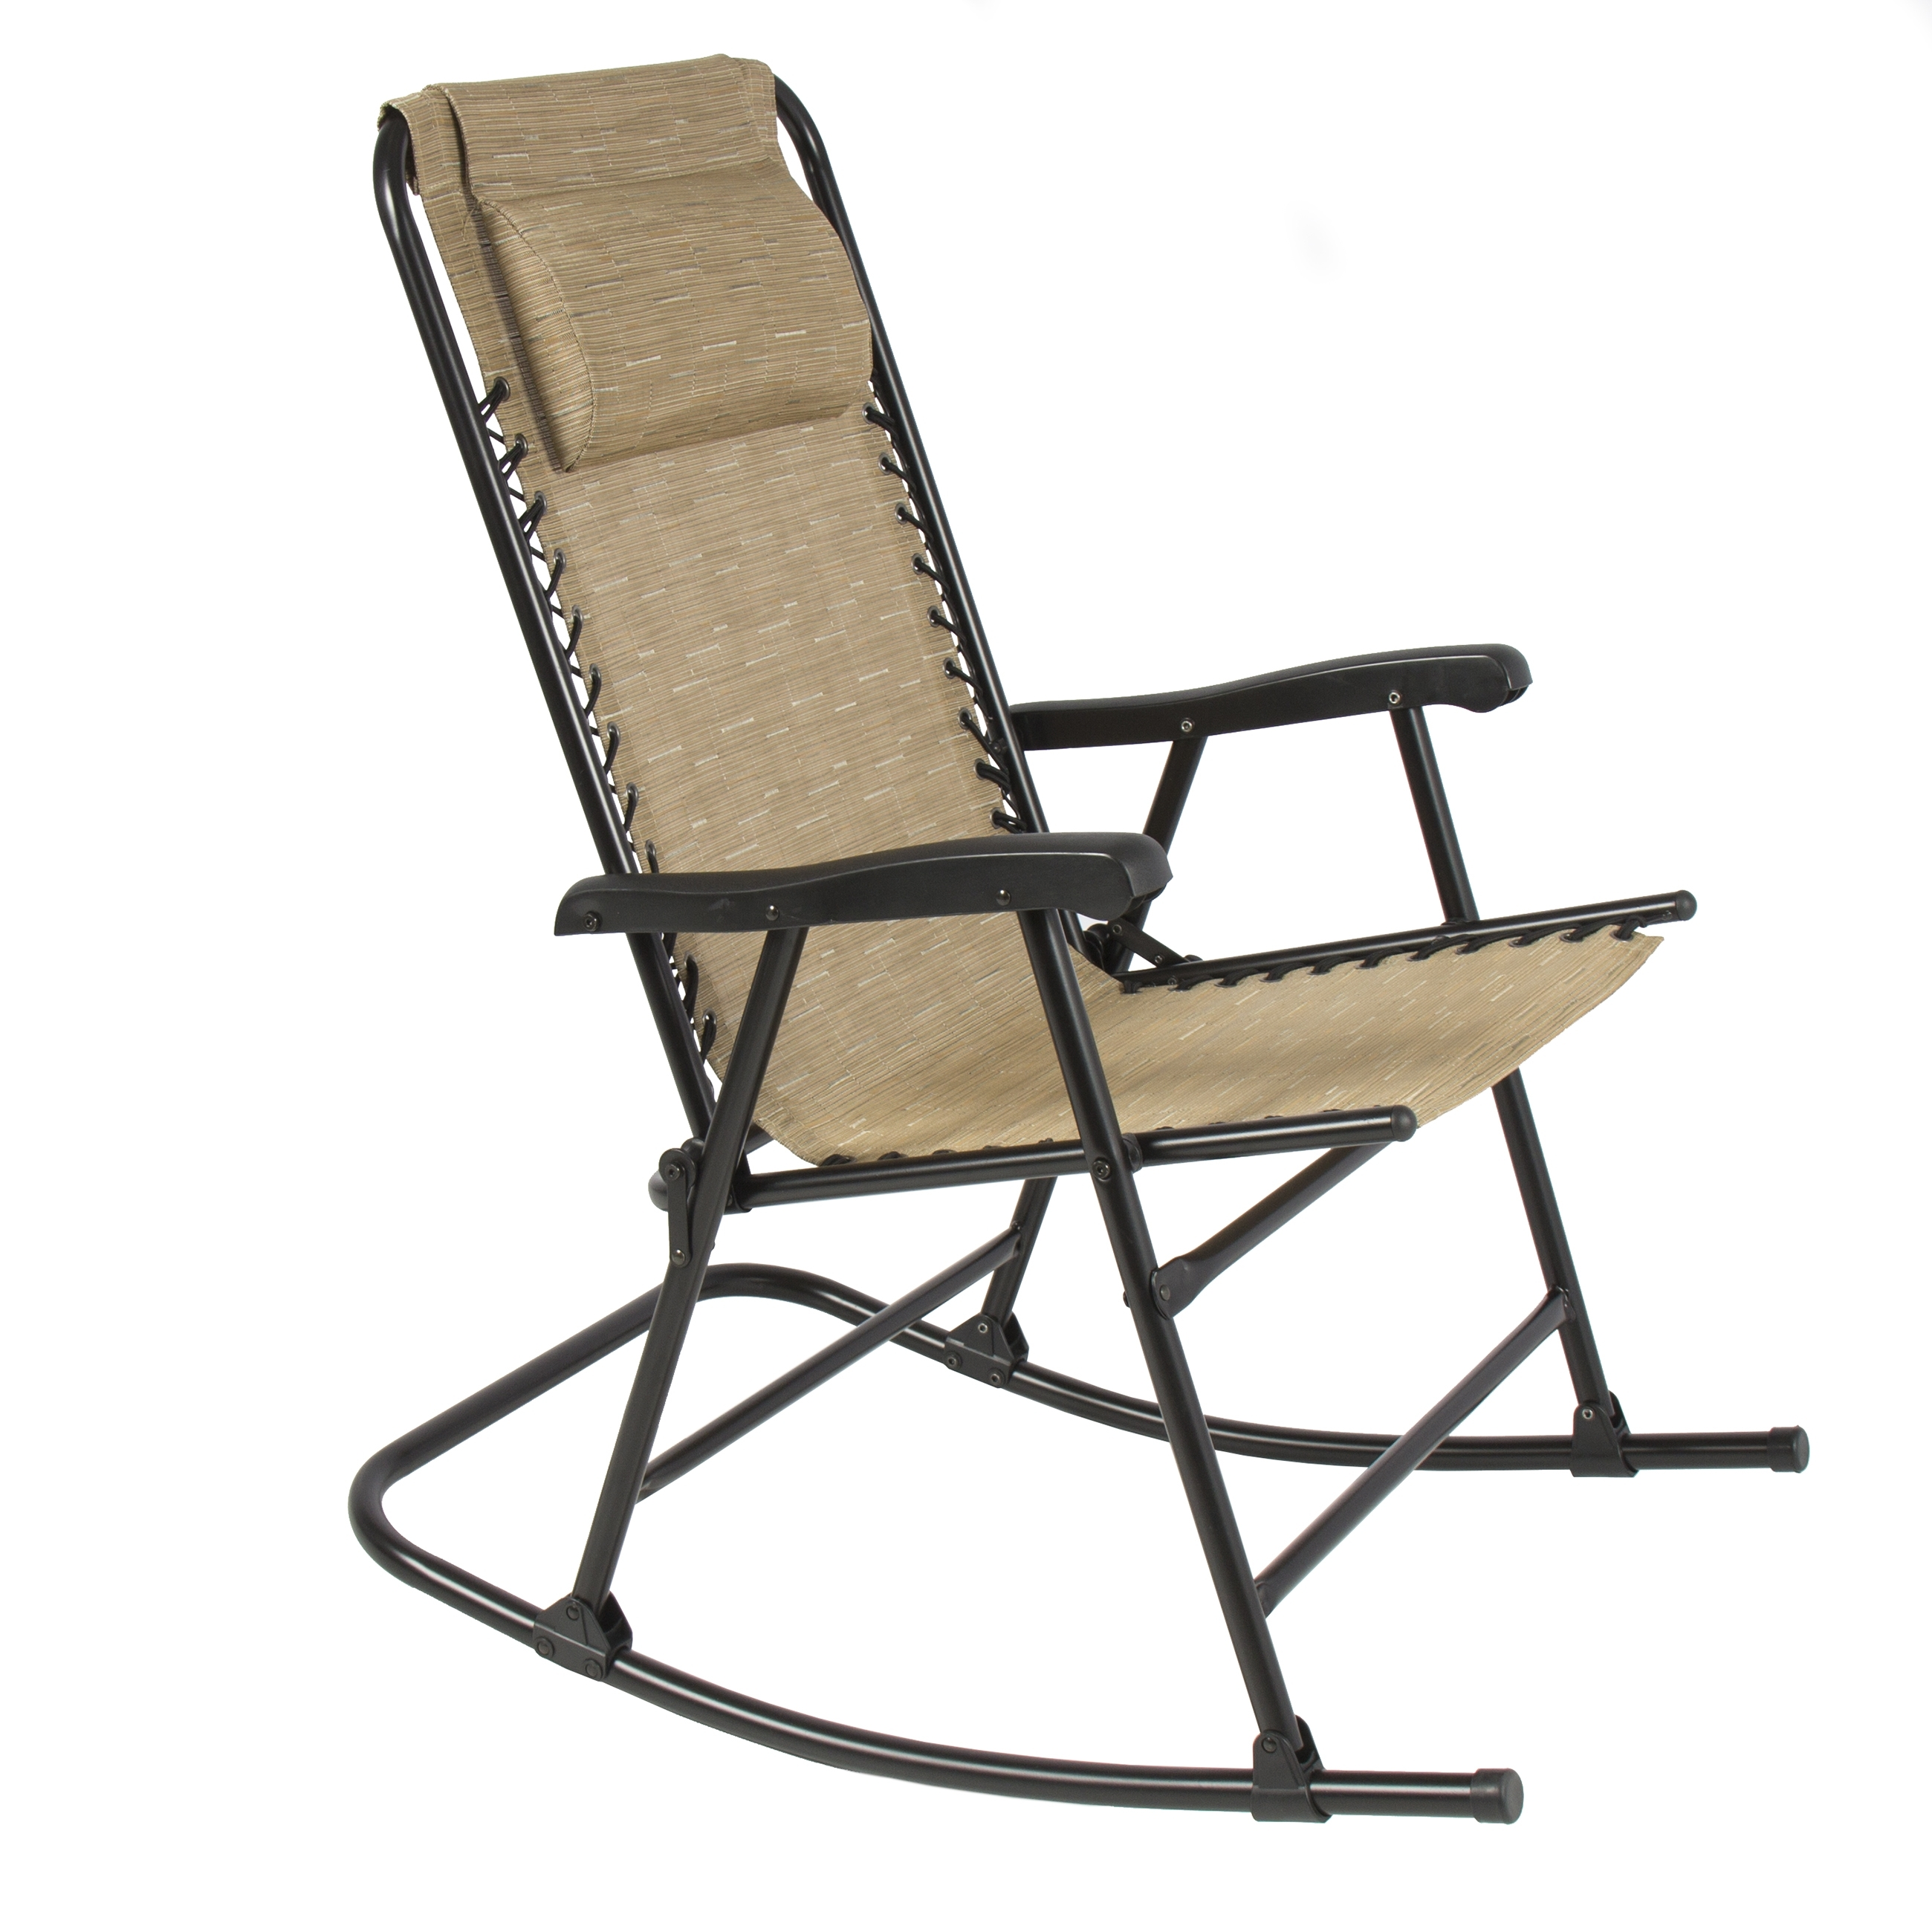 Walmart Rocking Chairs Intended For Well Known Folding Rocking Chair Foldable Rocker Outdoor Patio Furniture Beige (View 13 of 20)